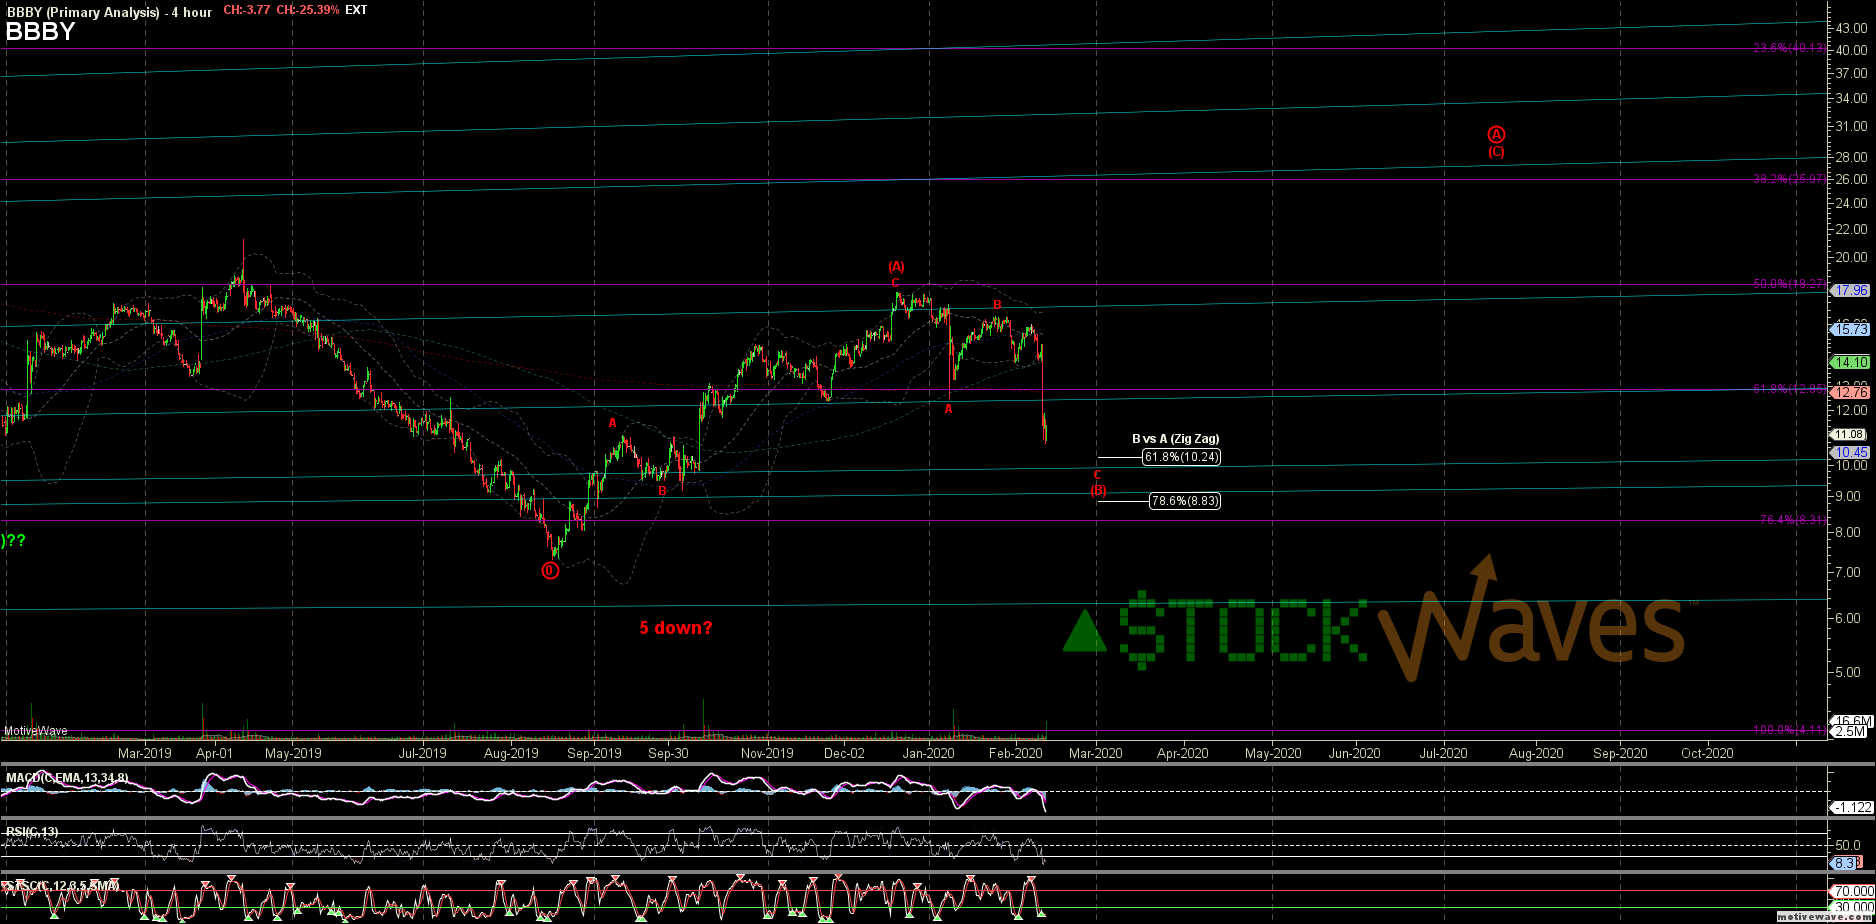 BBBY - Primary Analysis - Feb-12 1002 AM (4 hour)